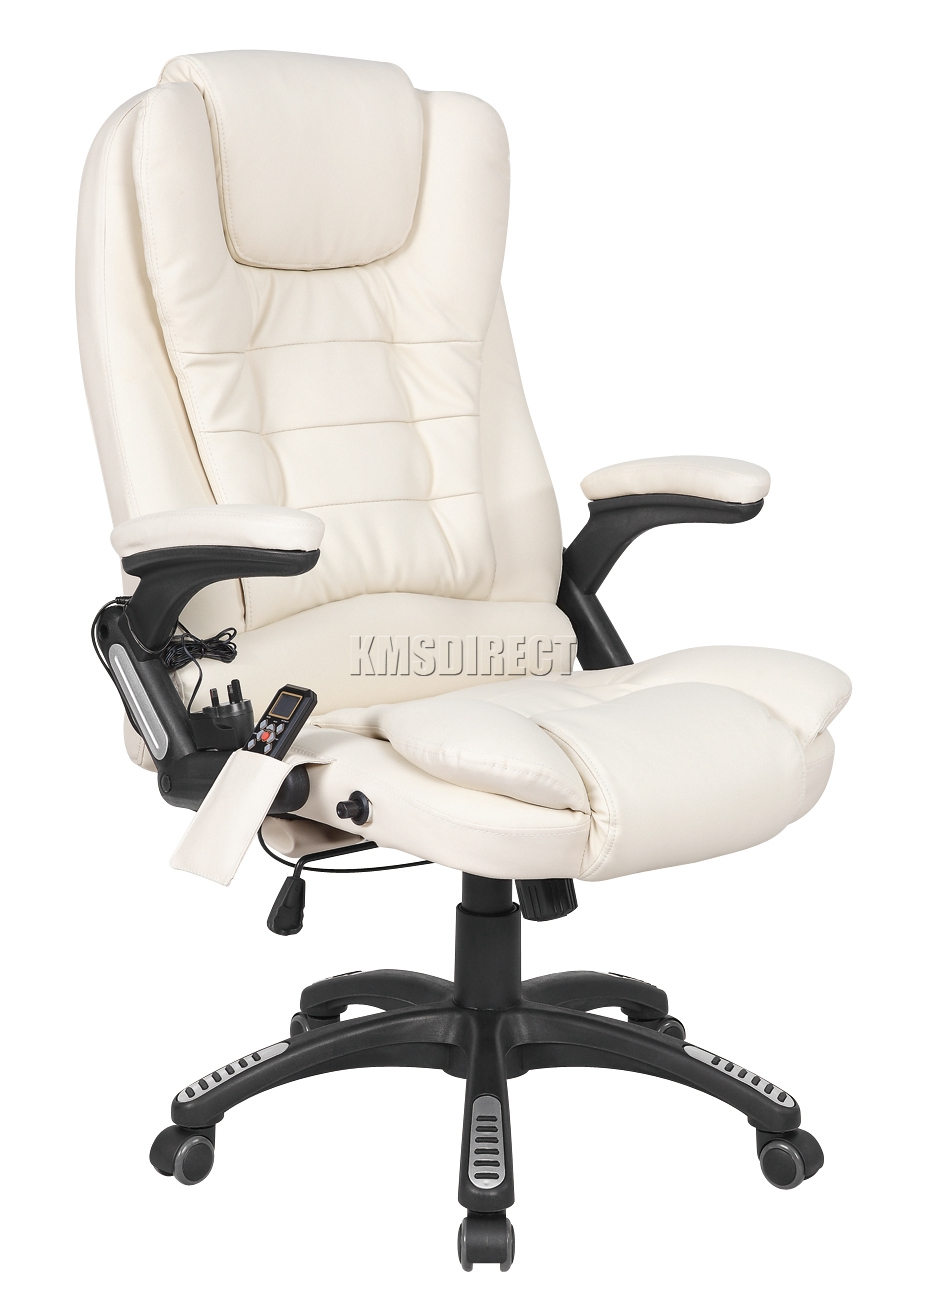 foxhunter 6 point massage office computer chair luxury leather